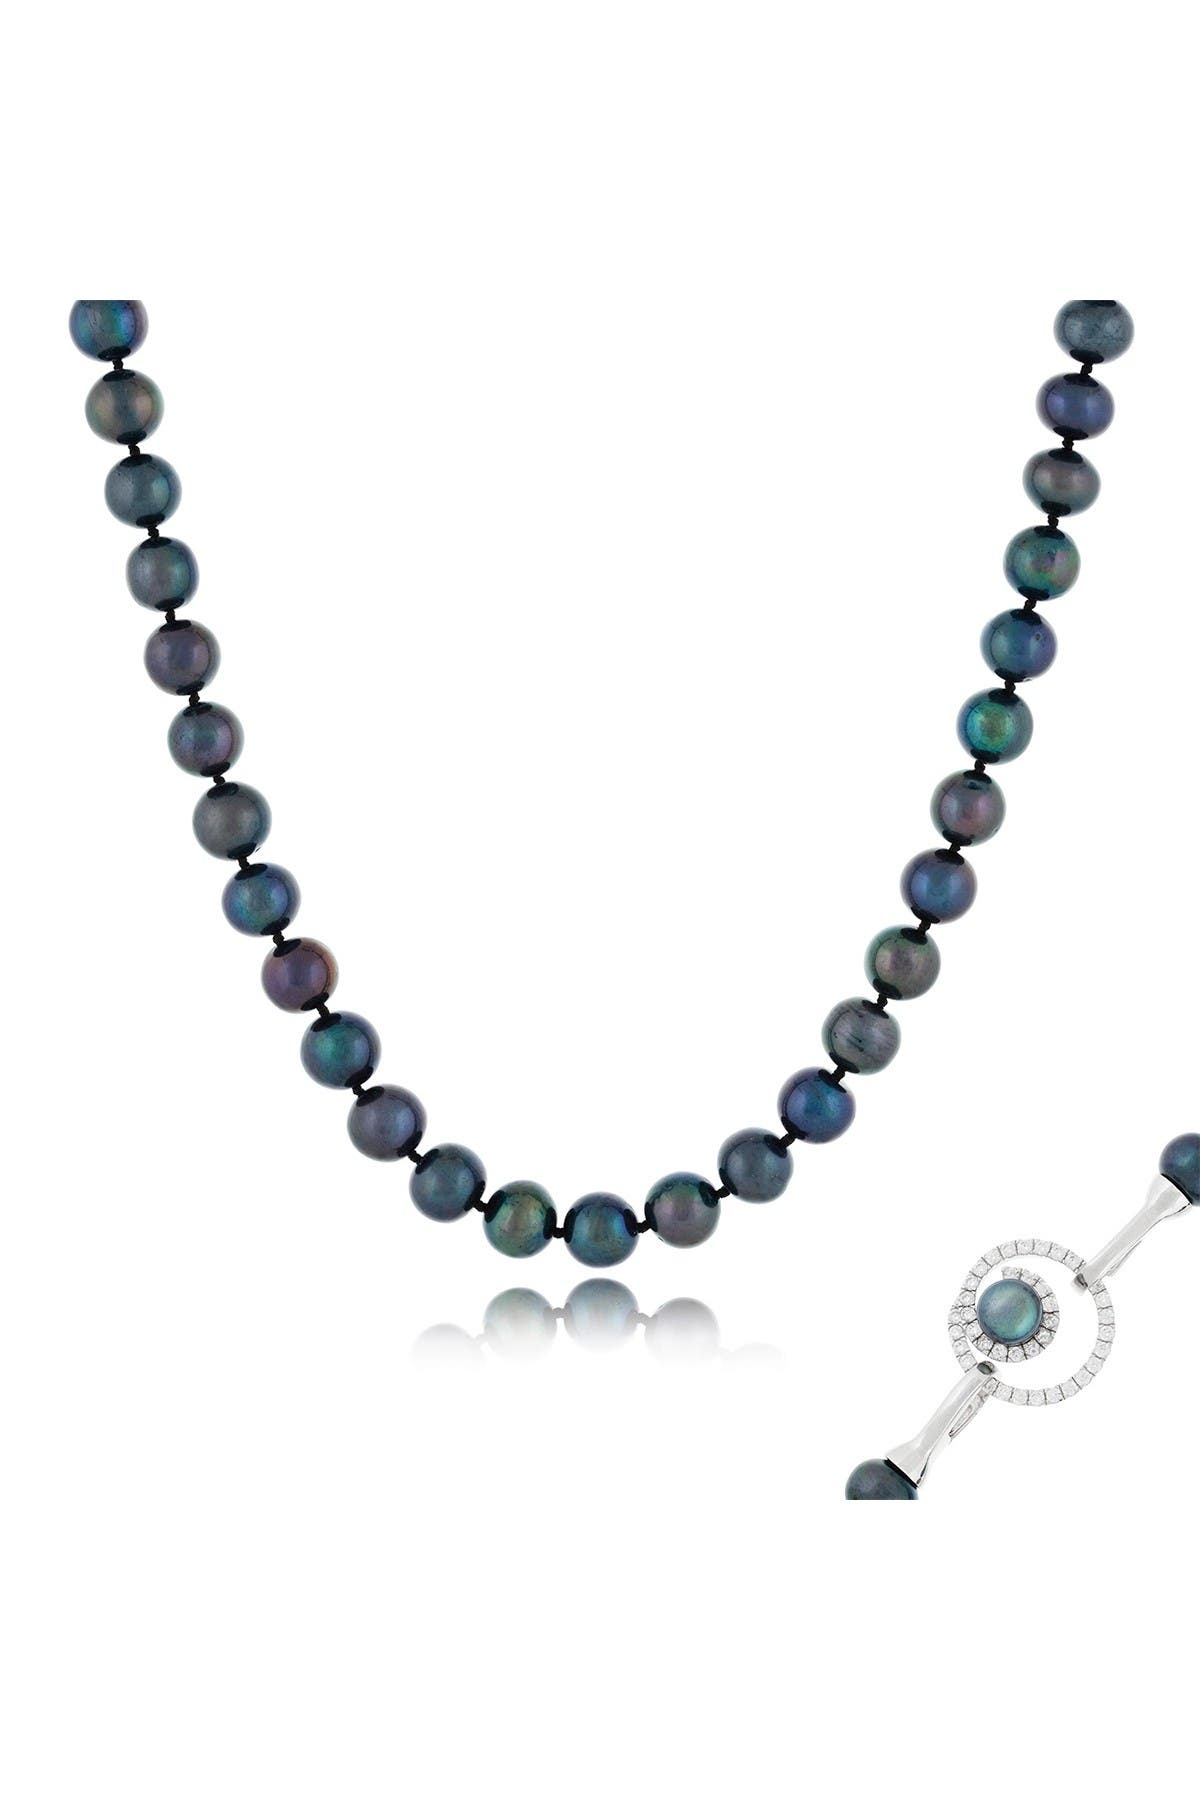 Image of Splendid Pearls 9-10mm Black Freshwater Pearl Necklace